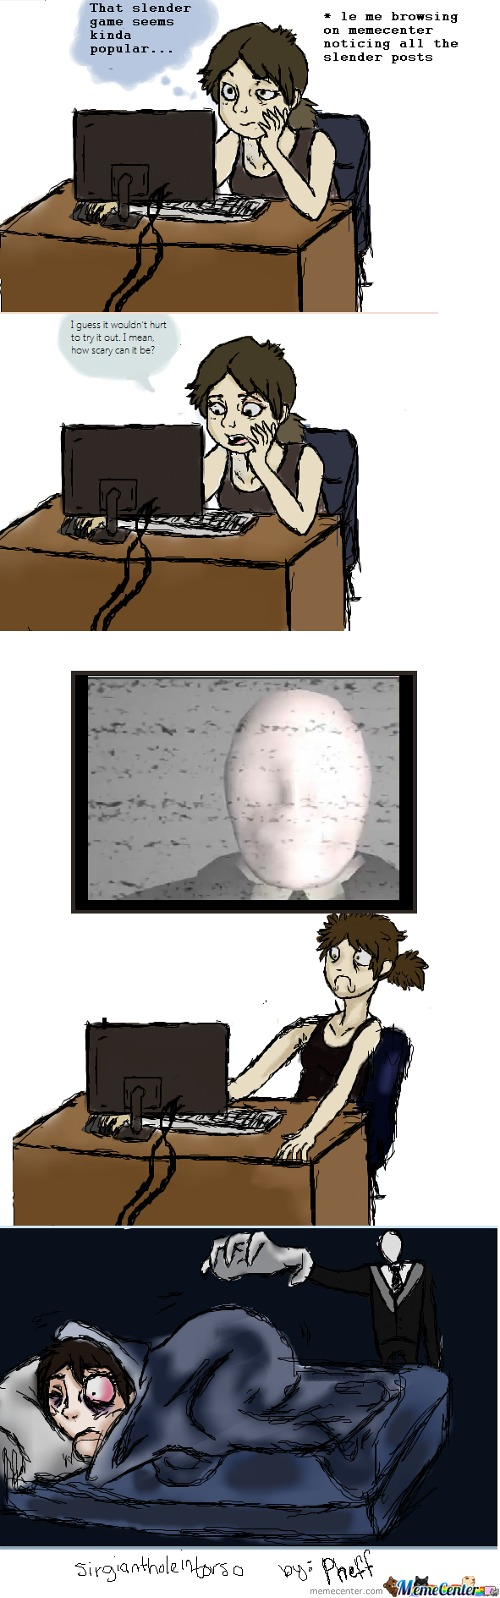 My Reaction To Slender